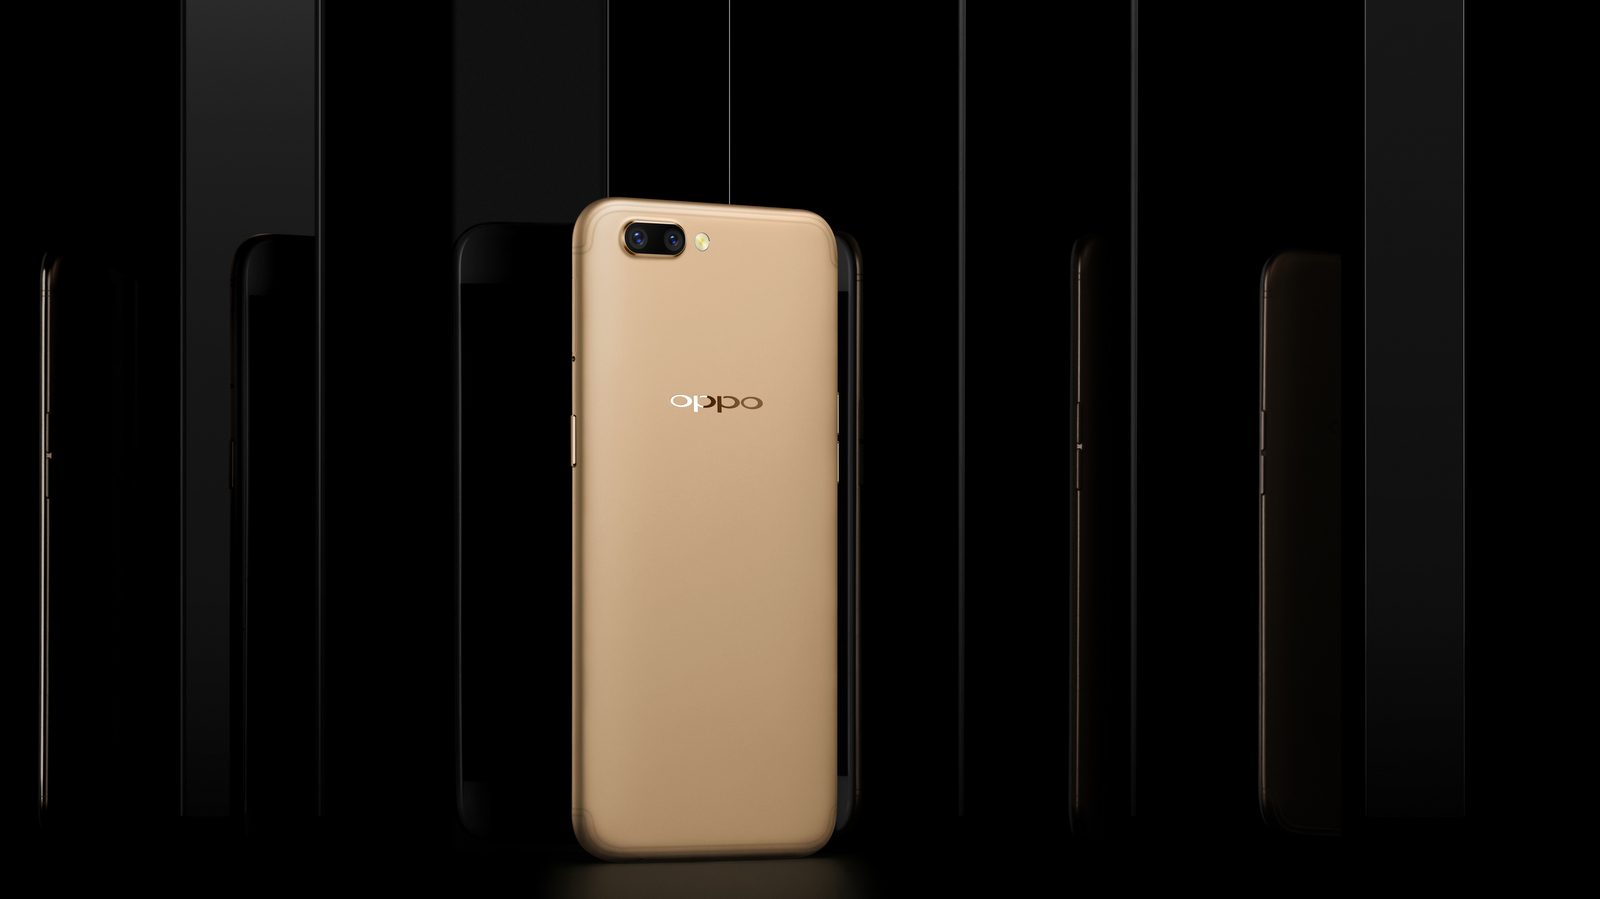 Oppo focuses on a best-in-class camera for its new R11 smartphone